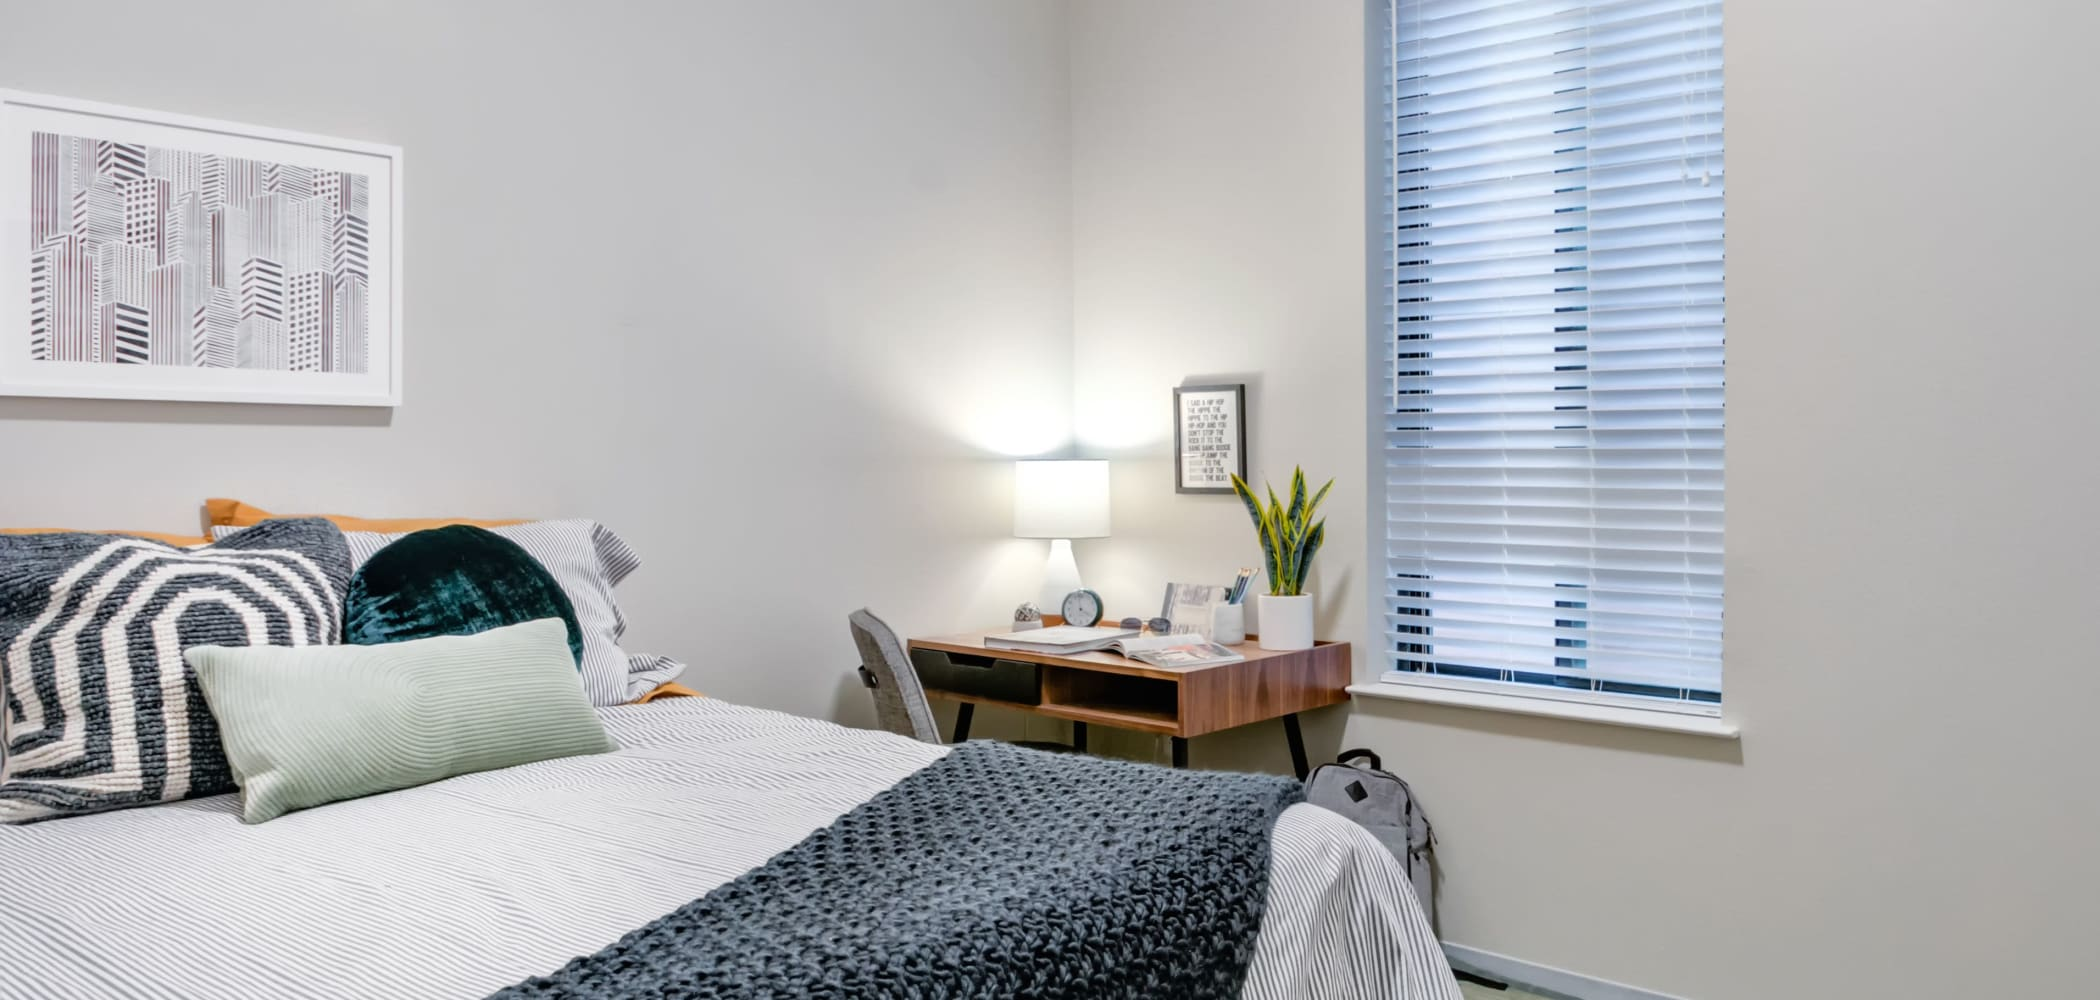 Cozy bedroom at The Link University City in Philadelphia, Pennsylvania